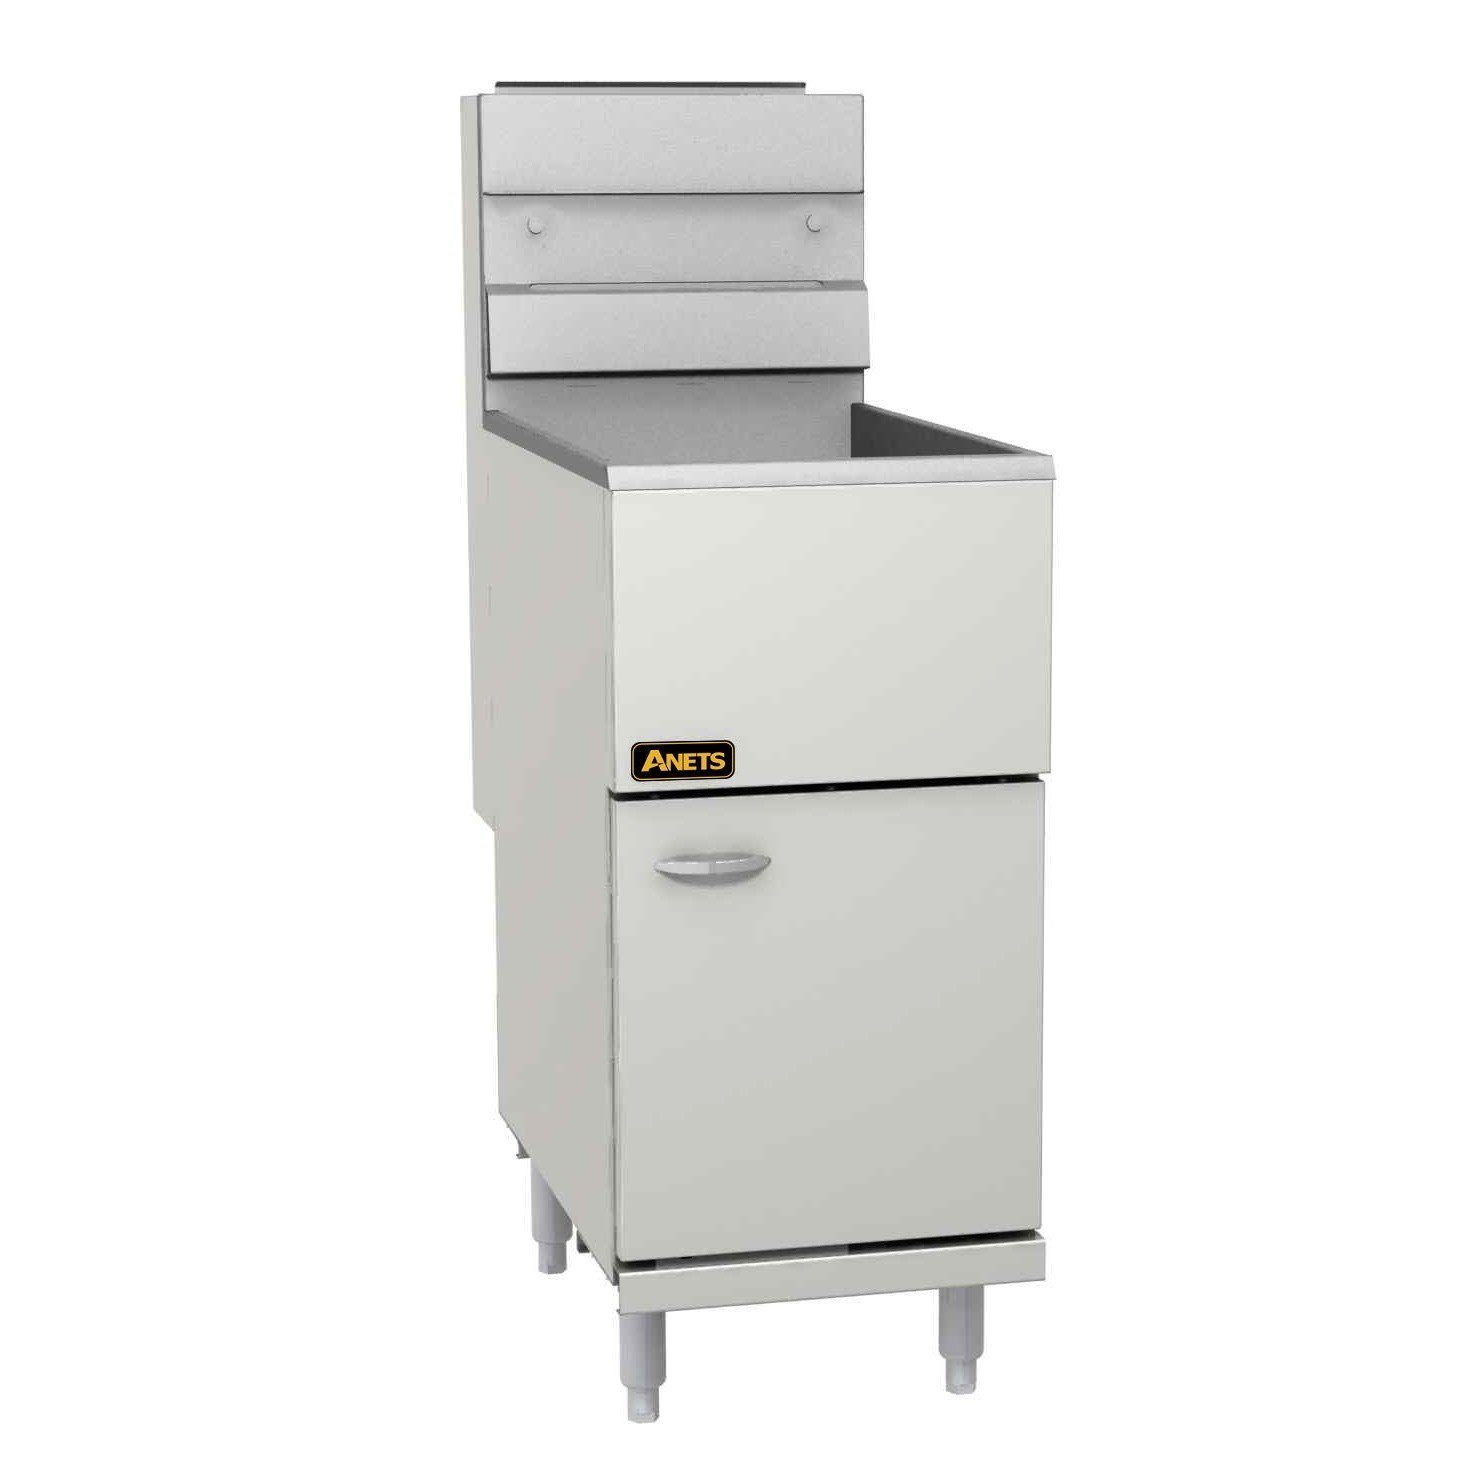 ANETS 45AS silver fryer series